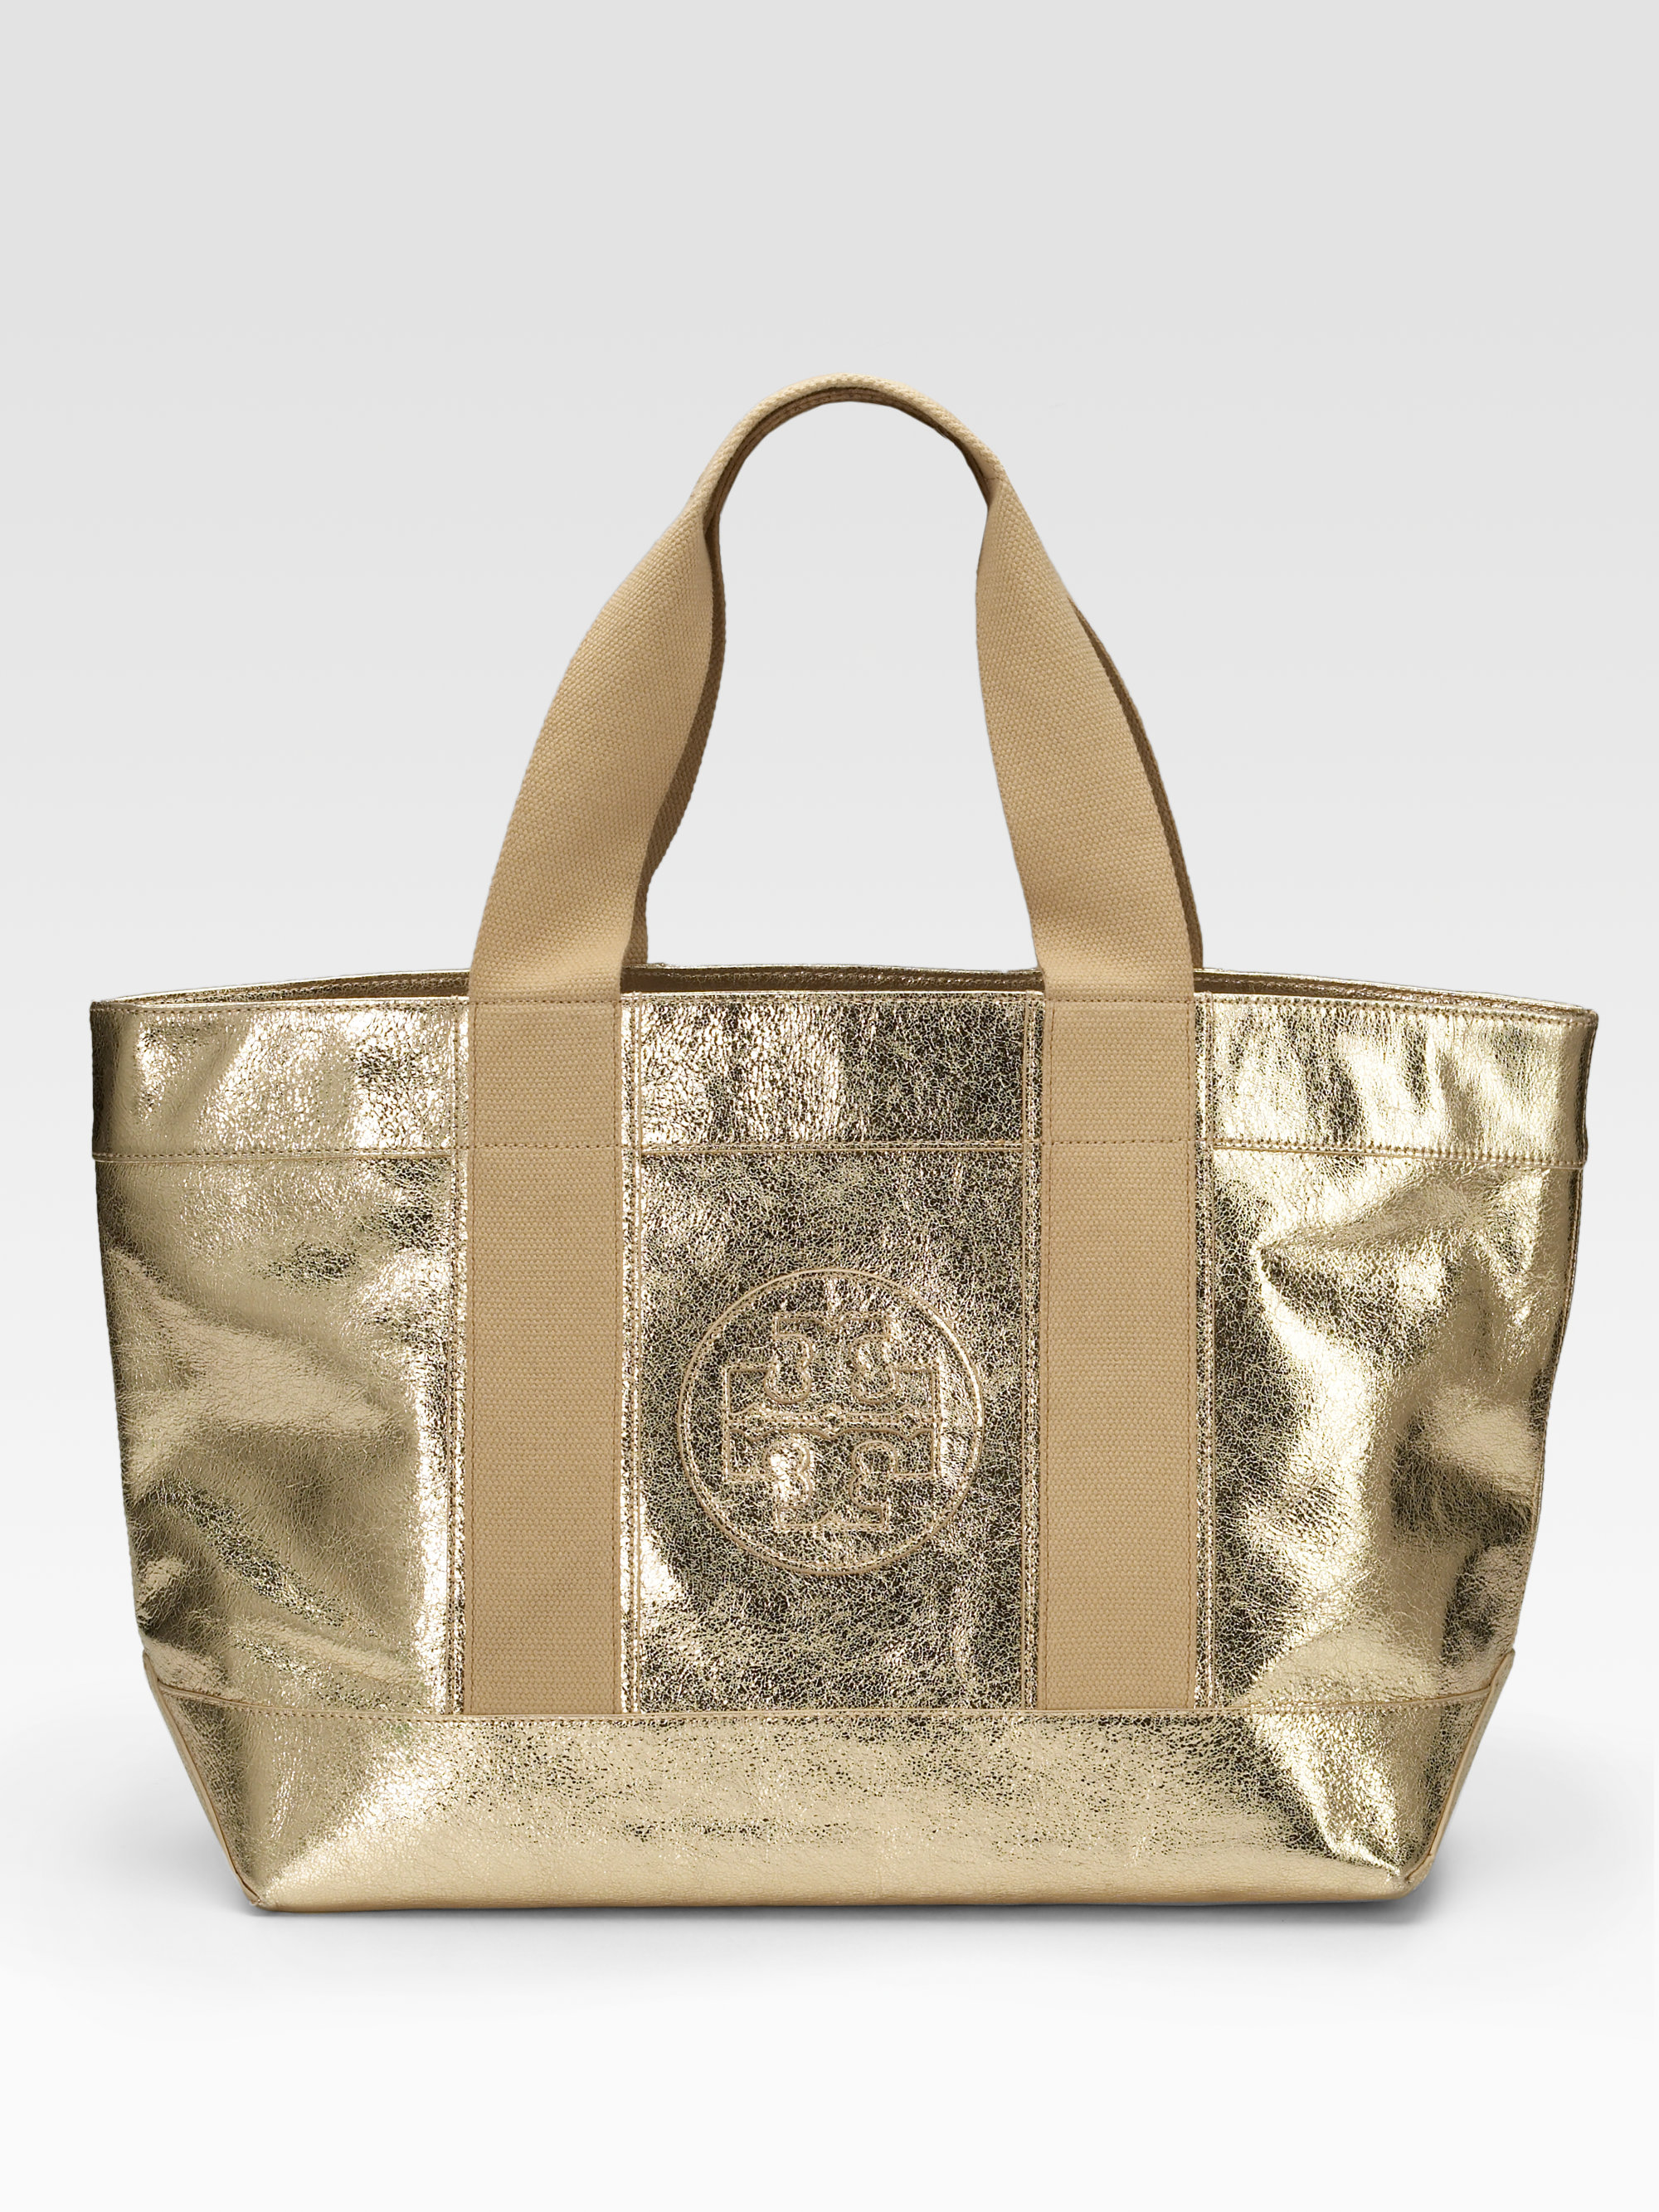 Tory burch Tory Metallic Leather Beach Tote in Metallic | Lyst